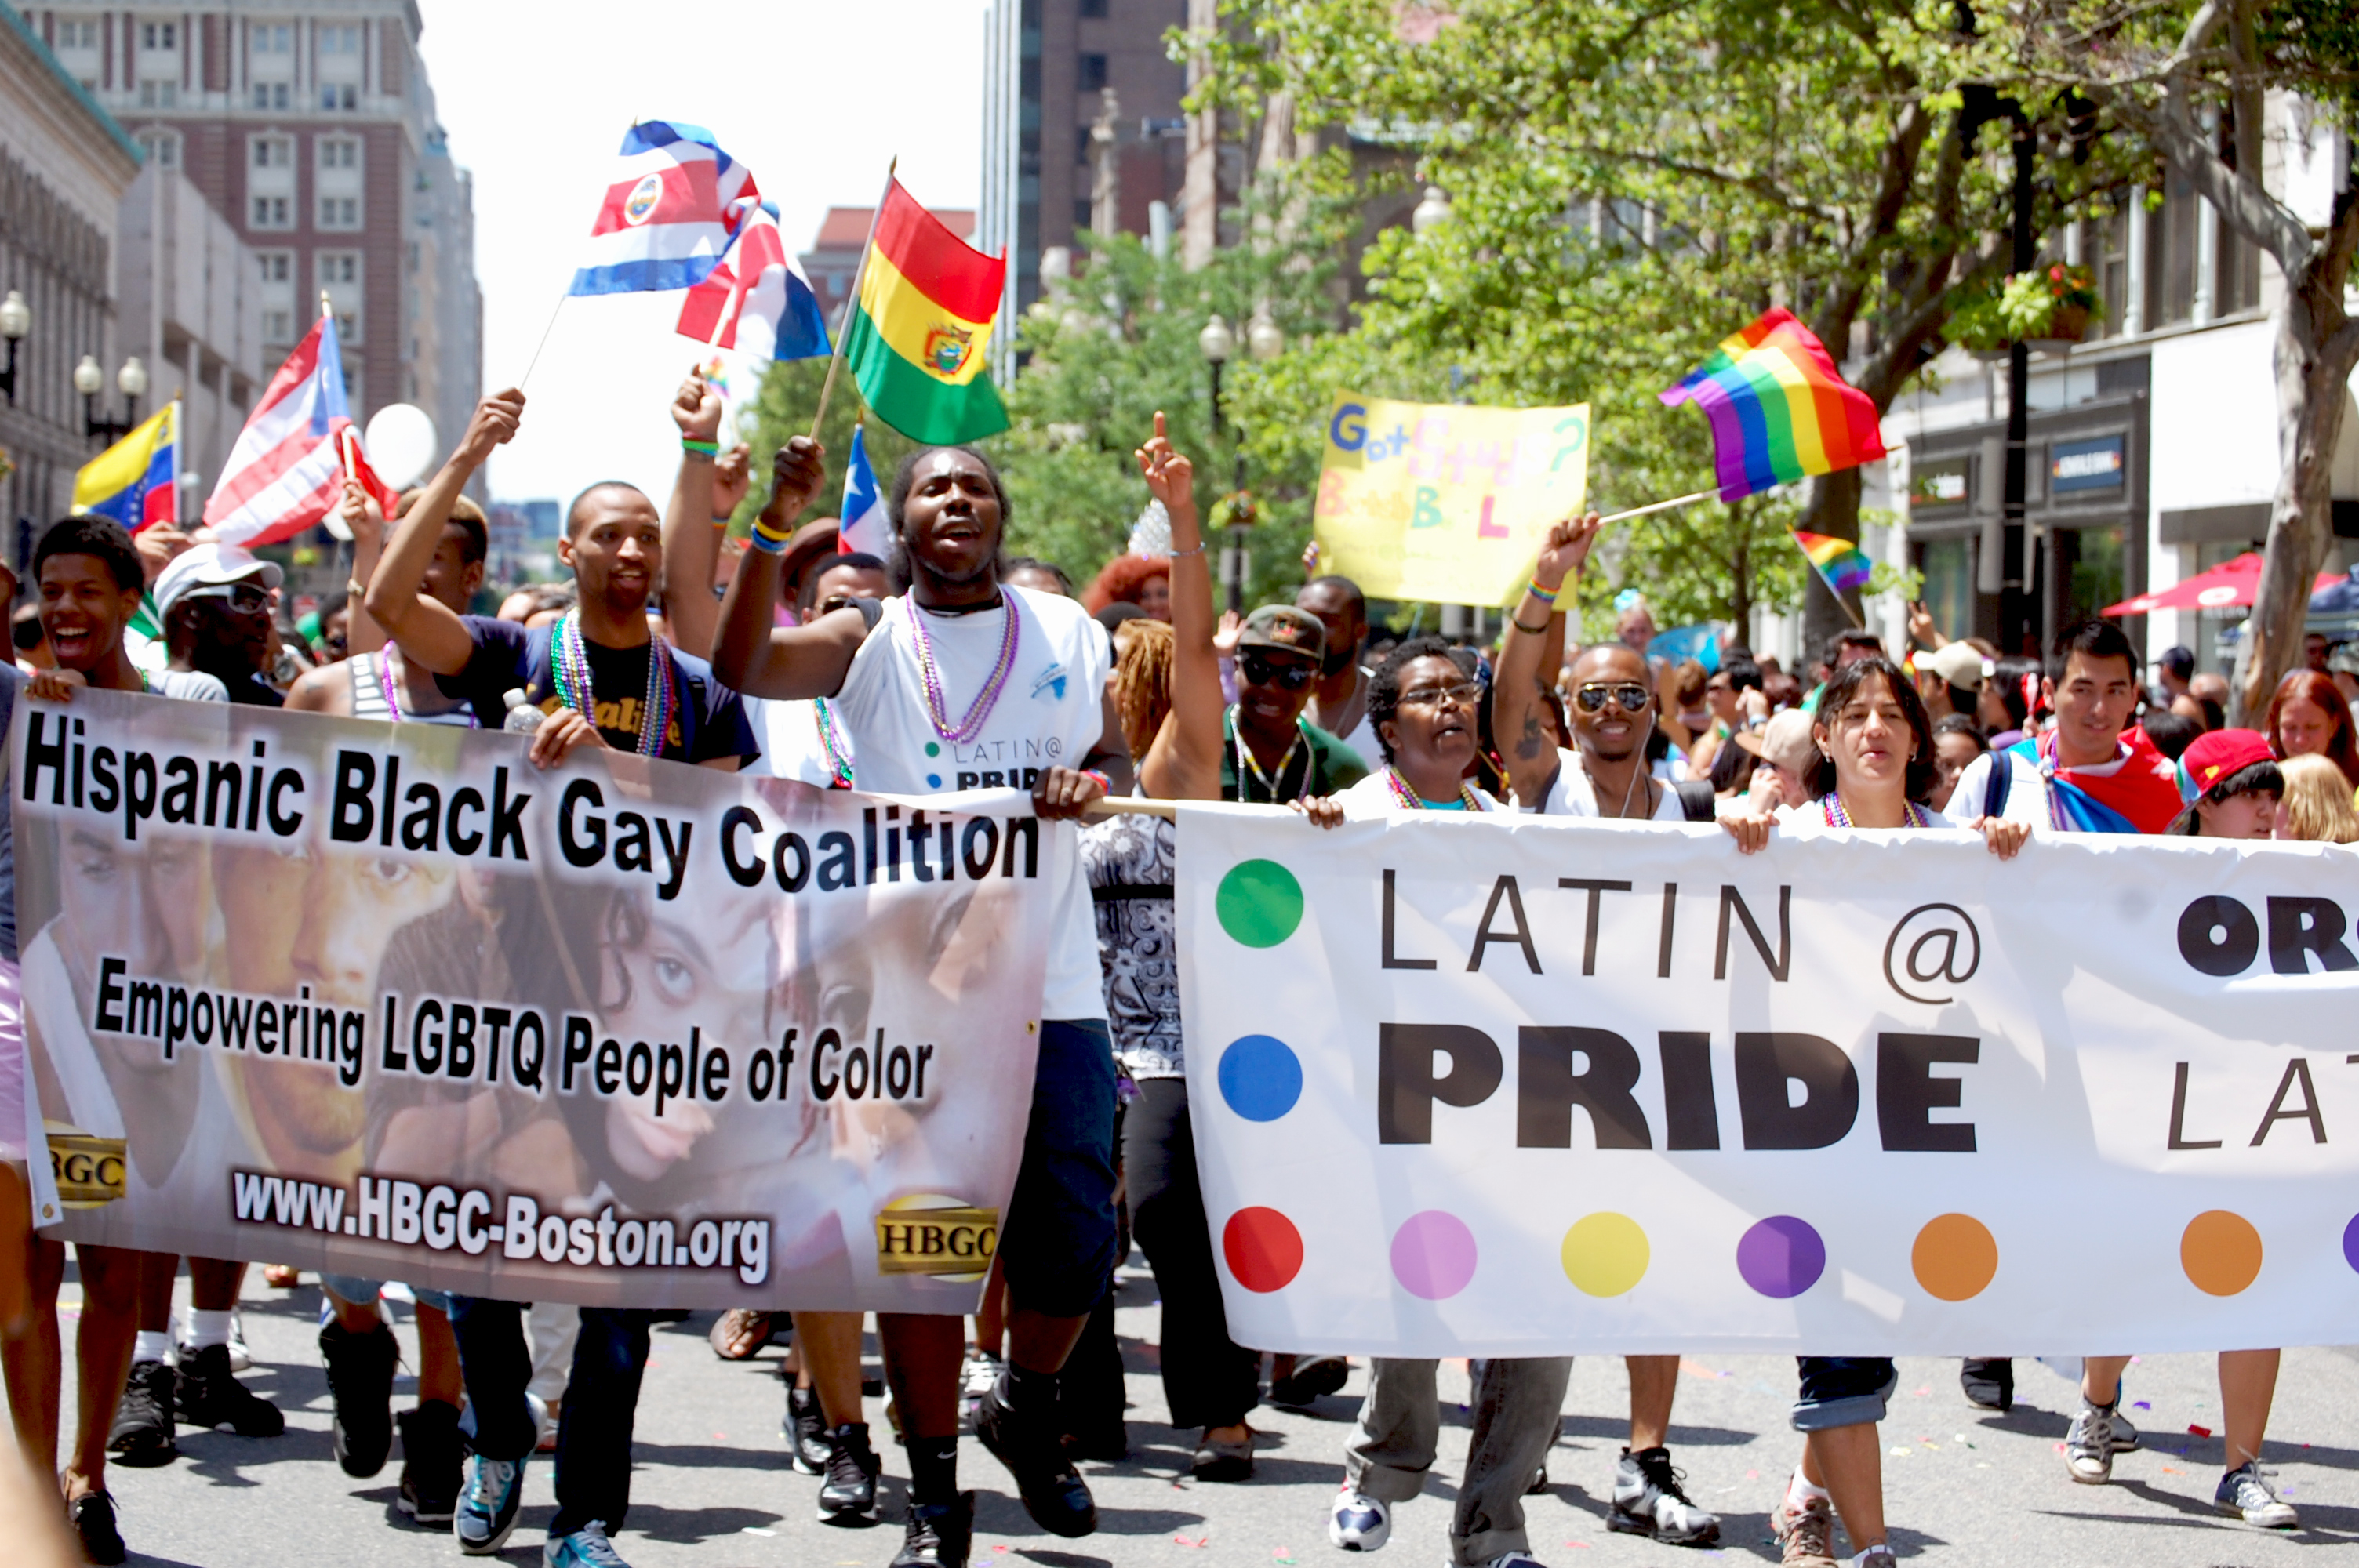 The Hispanic Black Gay Coalition and Latin@ Pride march together in Copley Square.